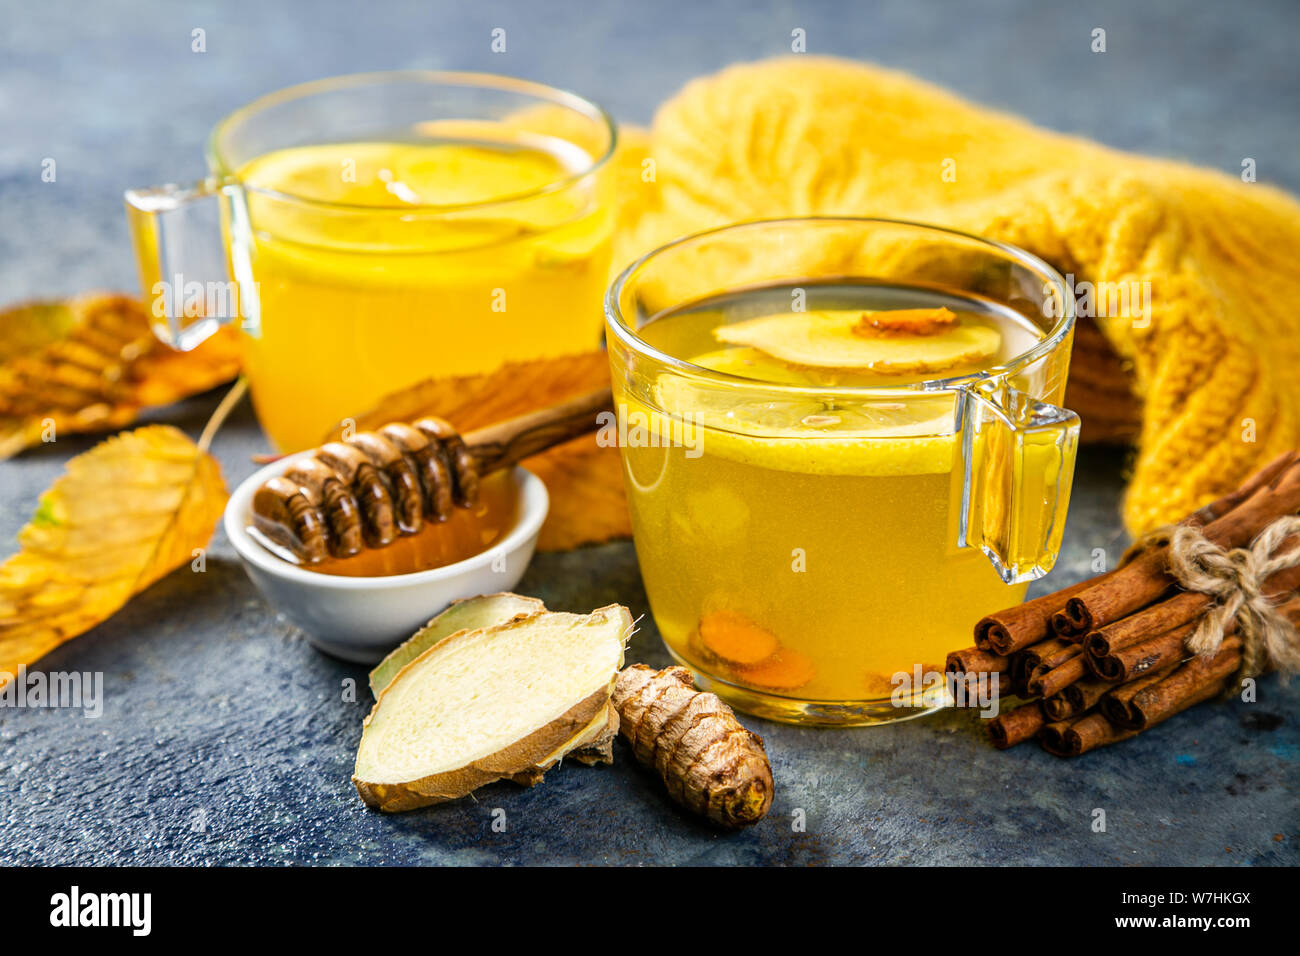 Ginger Turmeric Tea Stock Photos & Ginger Turmeric Tea Stock